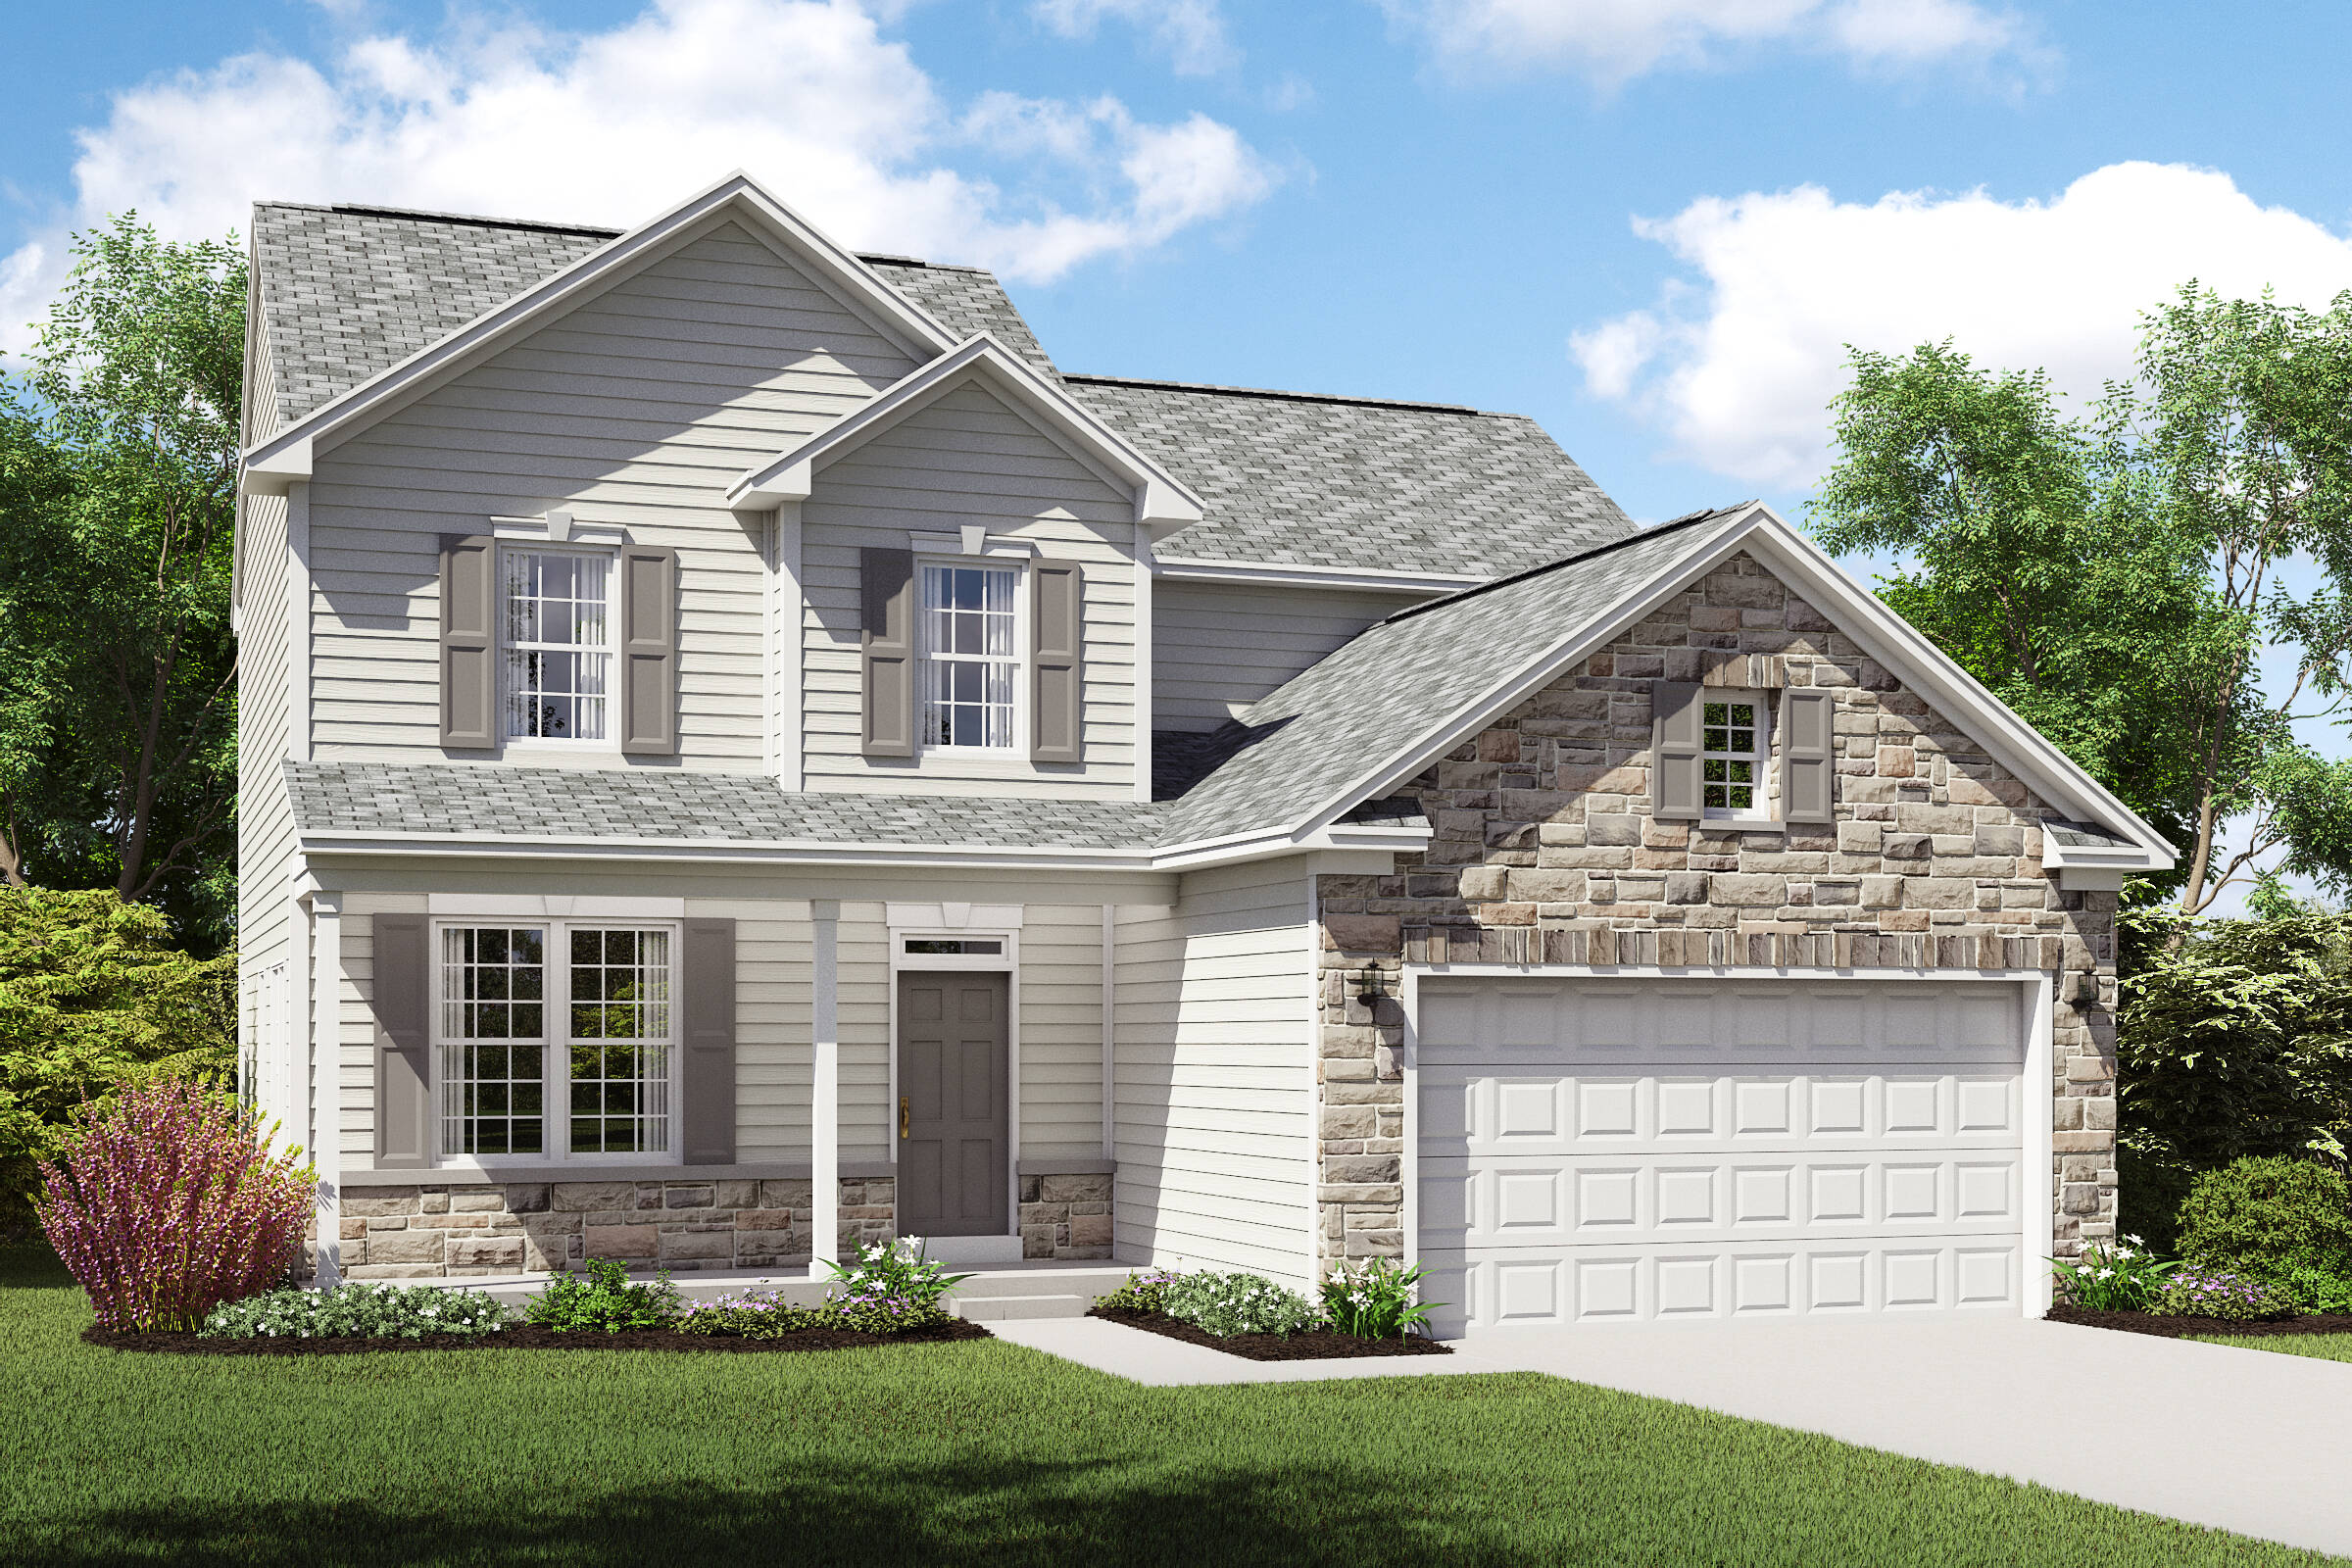 irving ct new homes for sale cleveland